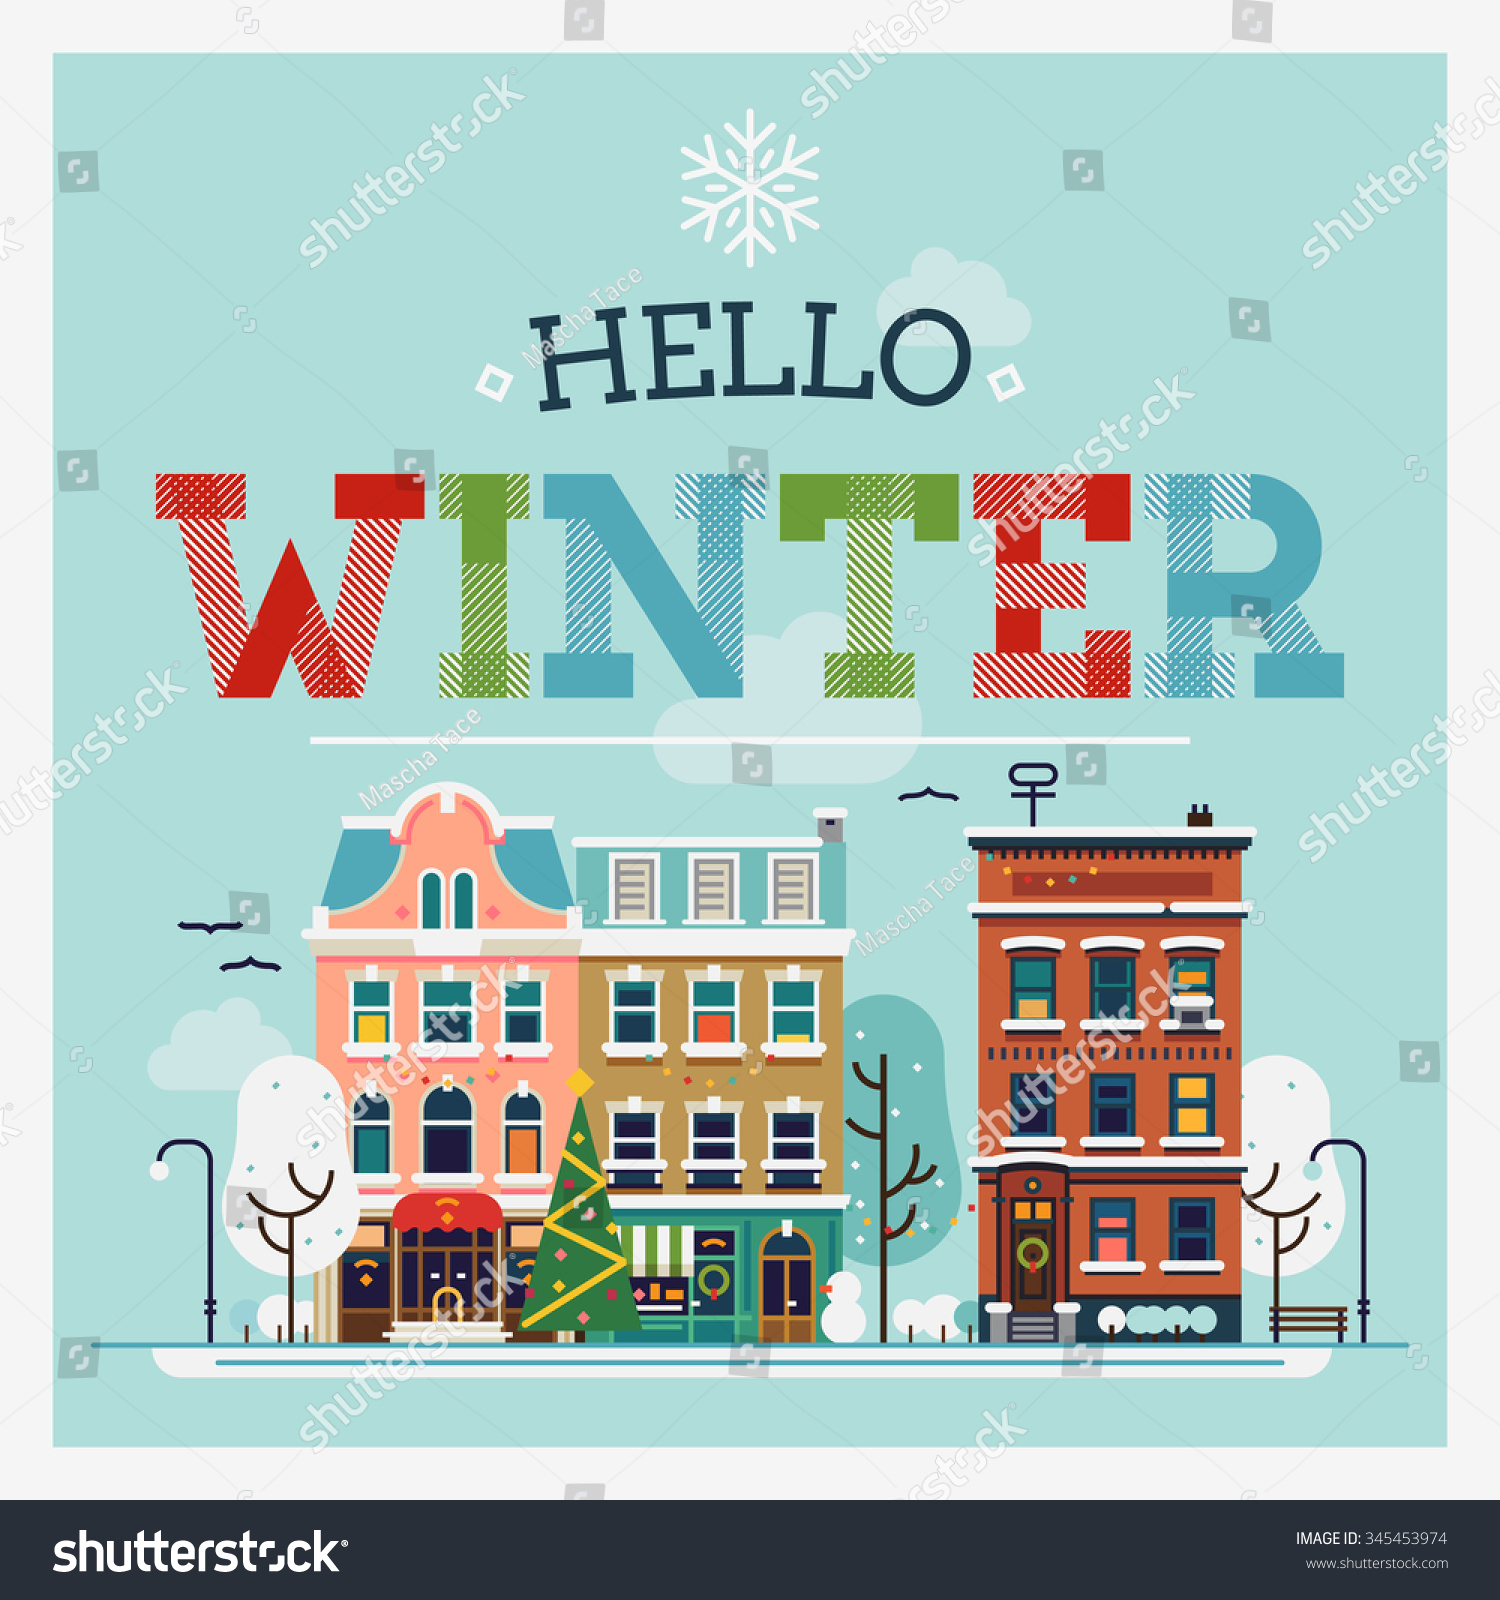 Attrayant Hello Winter Lovely Vector Flat Illustration. Small Town Street In Snowy Winter  Season. Ideal